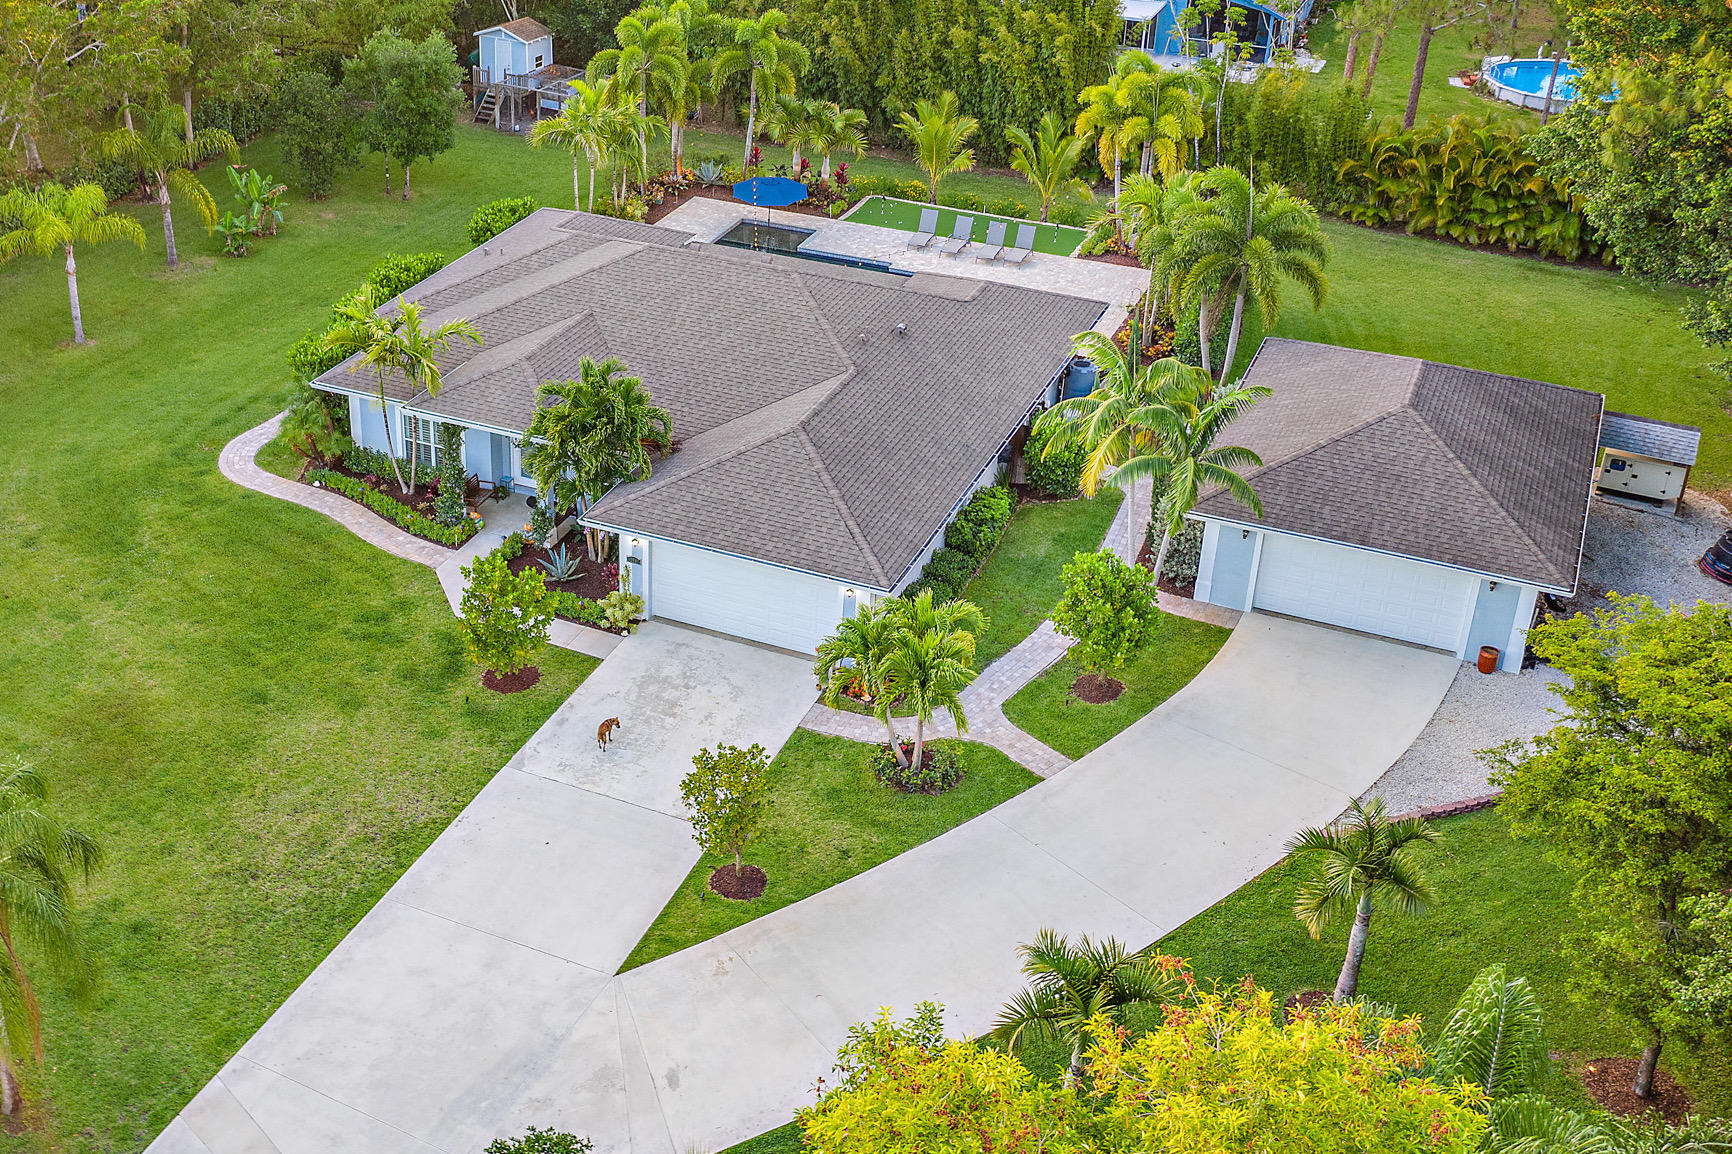 This 4 bed CBS home has it ALL! Built in 2015, it is move-in ready and located on a paved, dead-end street. Its open floor plan has the perfect layout with private office/guest room and split floor plan, cathedral ceilings, plantation shutters, large screened-in lanai and separate 875-sf CBS detached garage (25x35) with epoxy flooring. The 1.15-acre lot is fully fenced with an automatic gate and has an irrigation system. The lush tropical landscaped grounds provide complete privacy, while landscape lighting throughout highlights its features. The oversized, saltwater pool has a heater AND chiller, which you can control via Smart Phone. Surrounded by a large paver pool deck and featuring a putting green nearby. The home also includes a full home Reverse Osmosis System and generator hookup. There are no HOA fees. Bring your chickens, boat, or RV. There is plenty of space for it all!